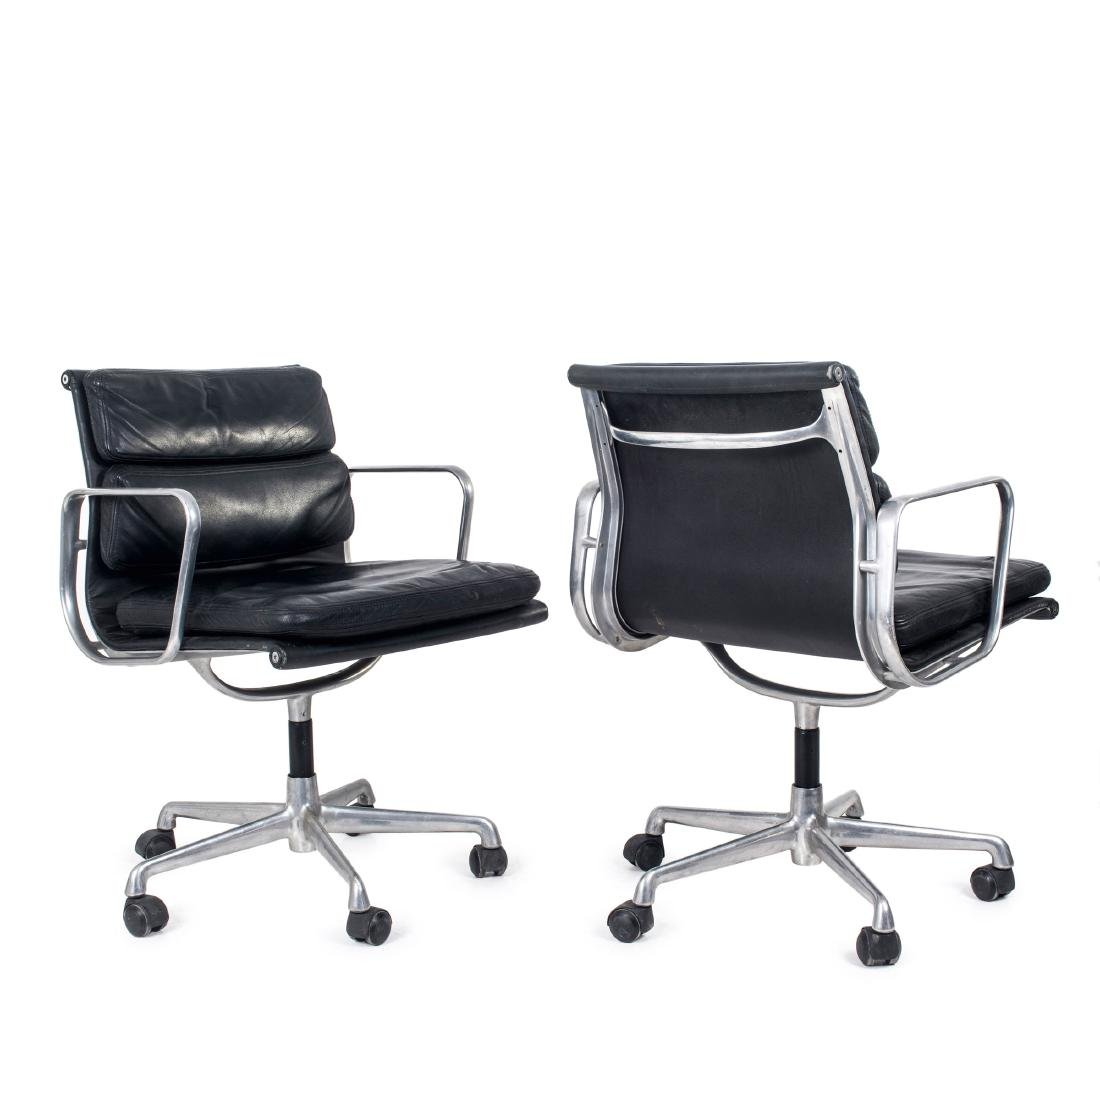 Two 'Soft Pad Group' desk chairs, 1969